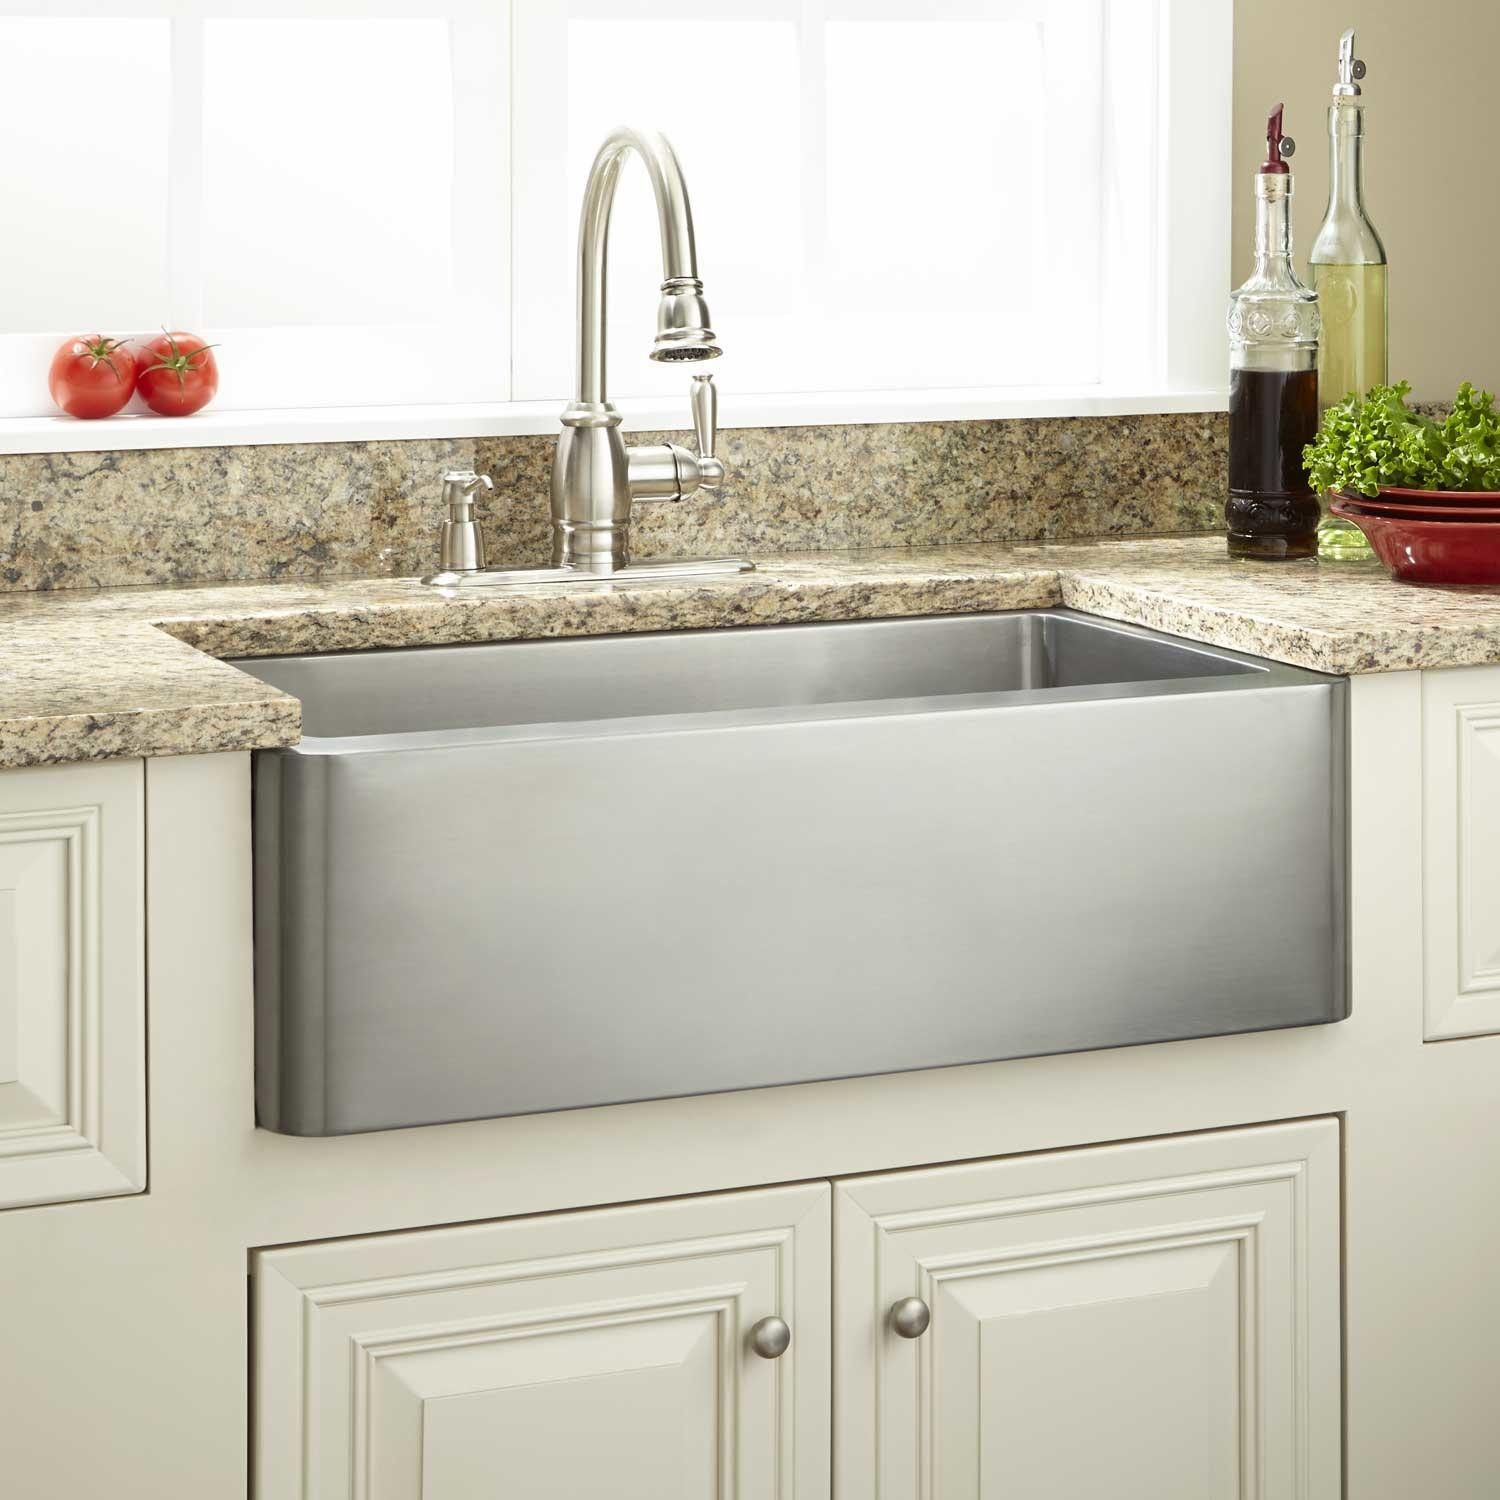 Elegant Stainless Steel Farmhouse Sink with towel Bar